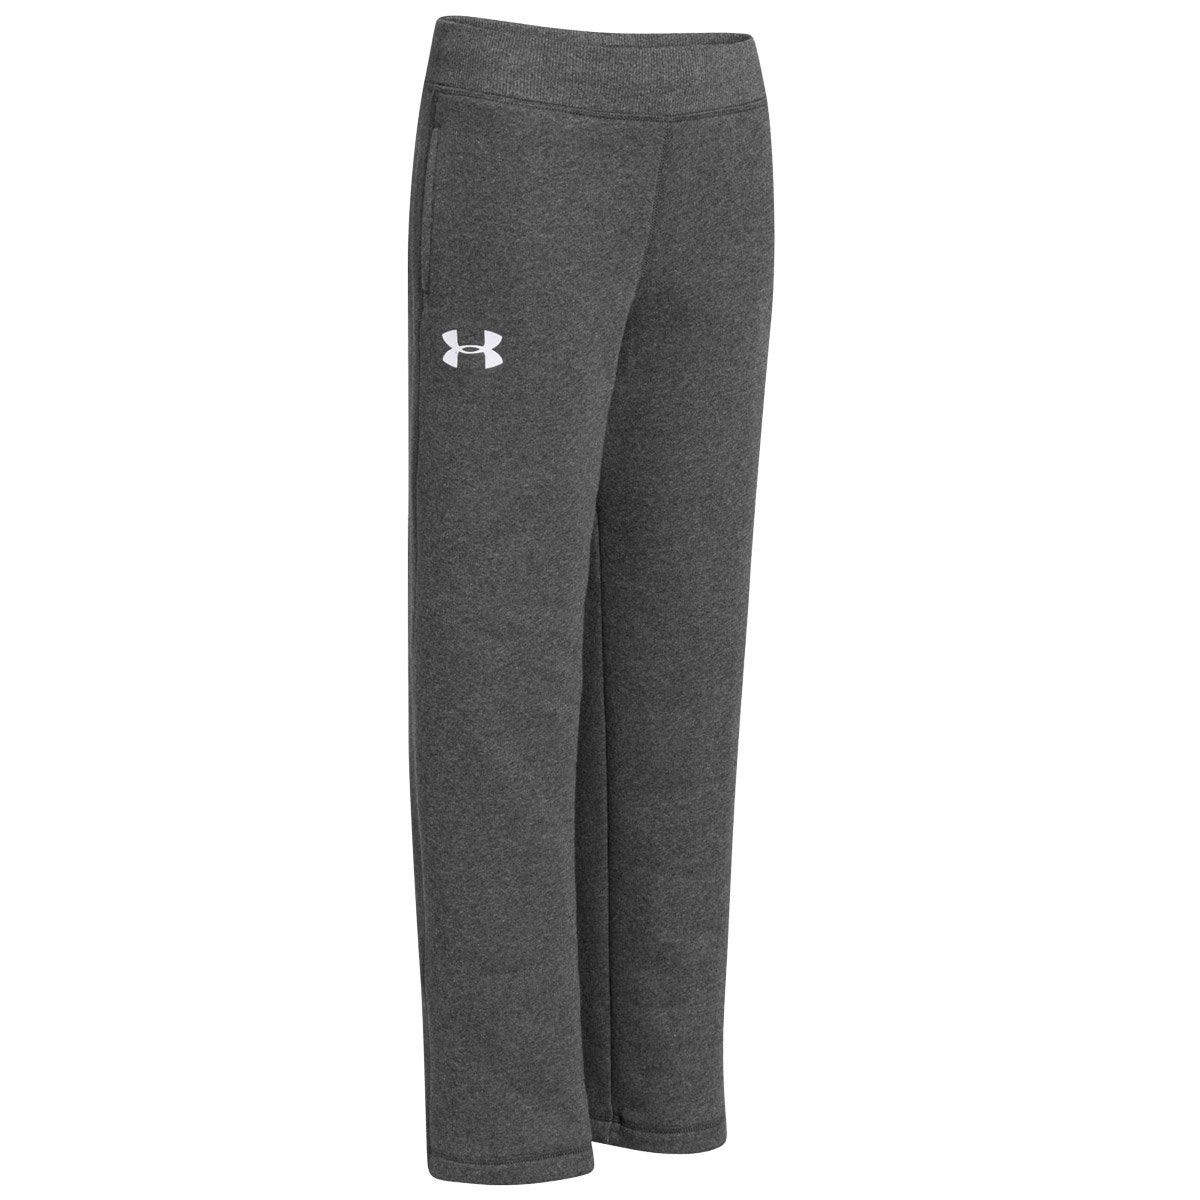 Under Armour Rival Cotton Youth Pant